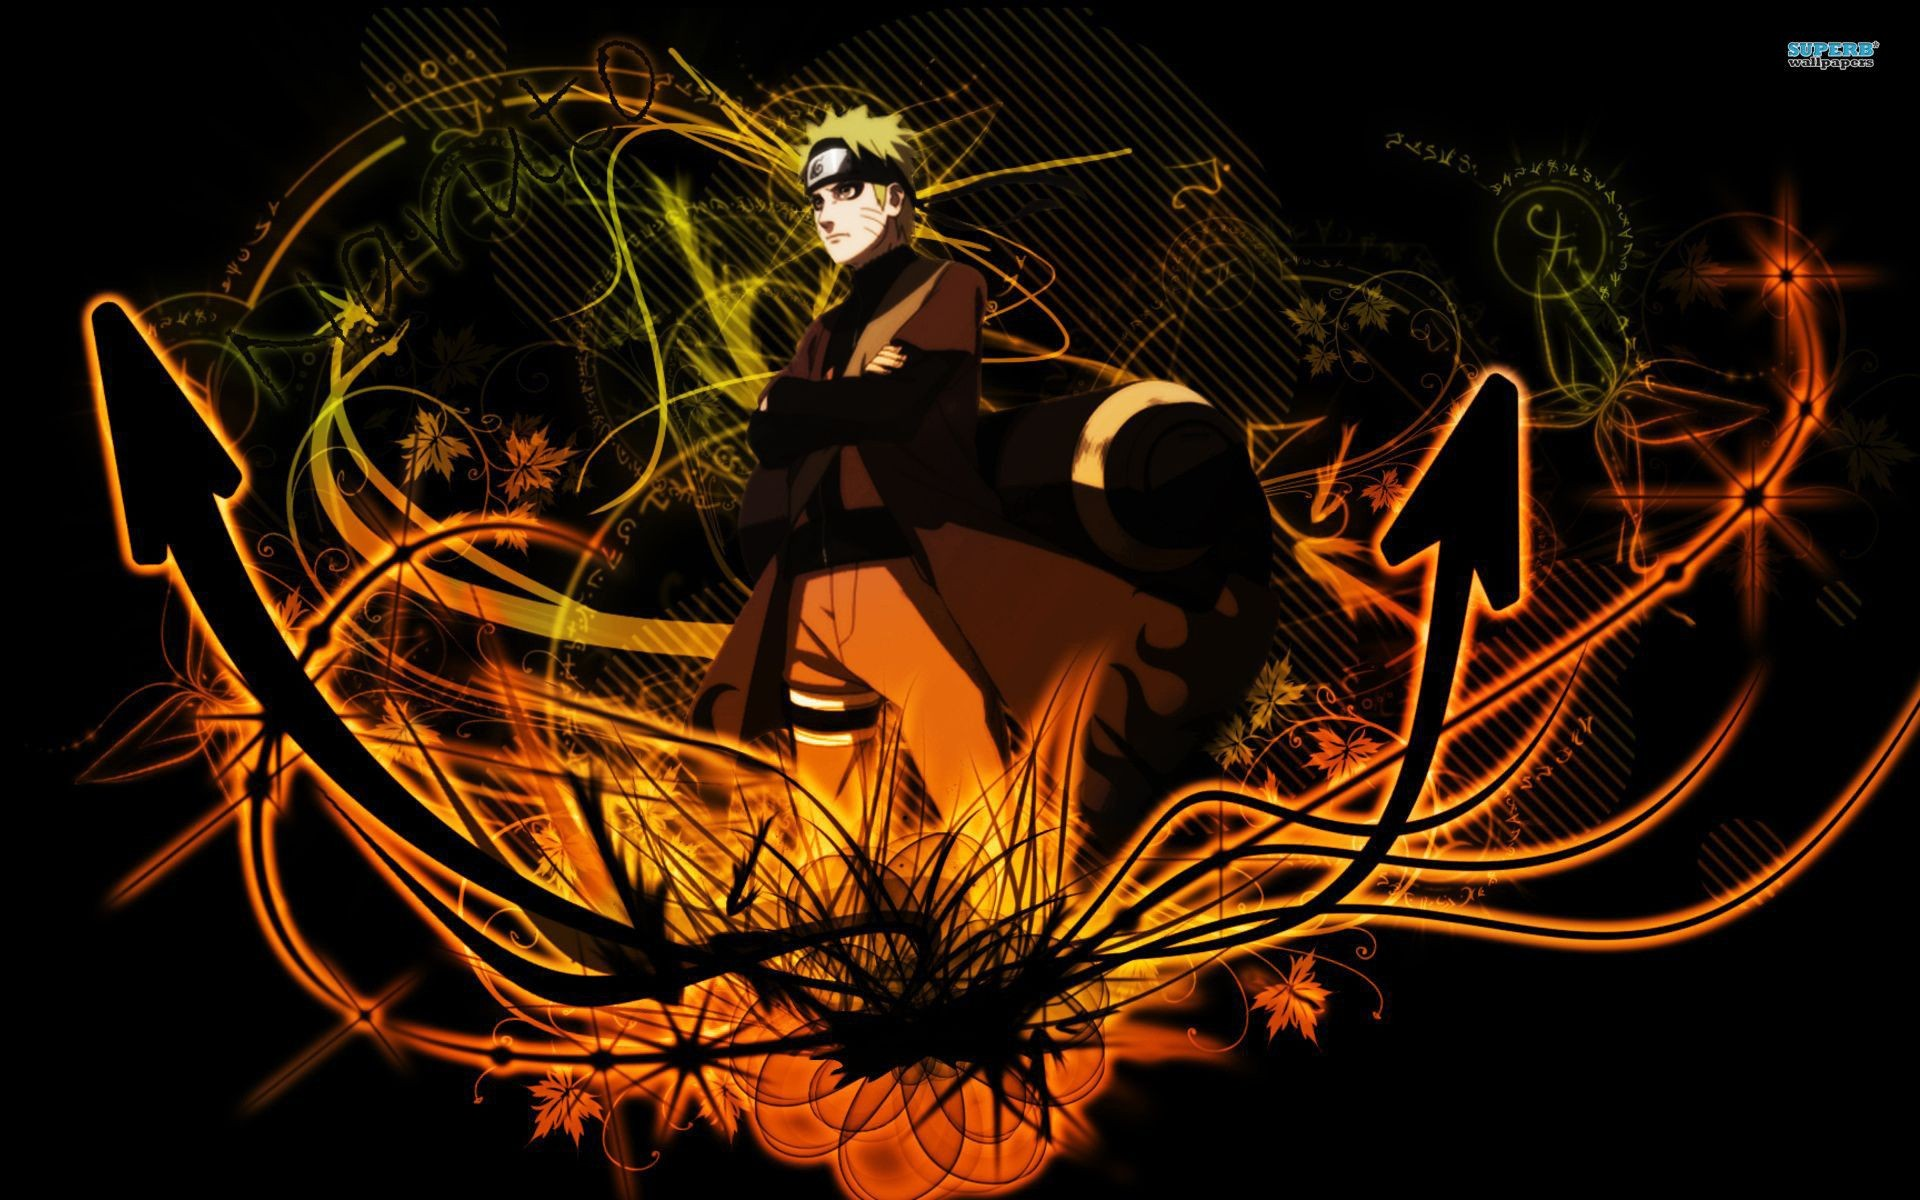 Wallpaper Hp Hd Keren - Sage Mode Wallpaper Naruto , HD Wallpaper & Backgrounds